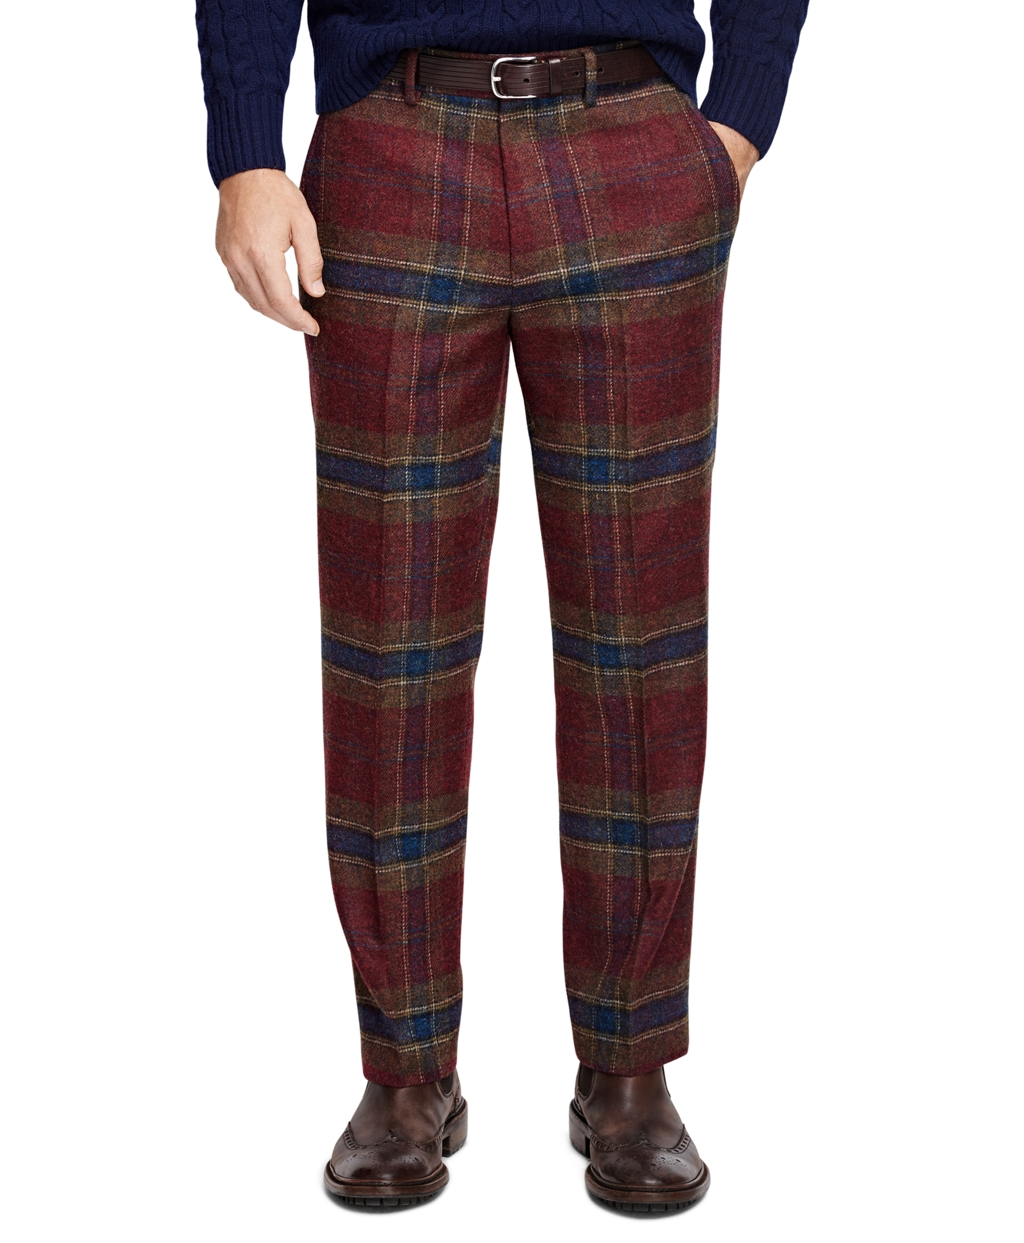 Men's Vintage Style Pants, Trousers, Jeans, Overalls Brooks Brothers Mens Own Make Plaid Trousers $398.00 AT vintagedancer.com